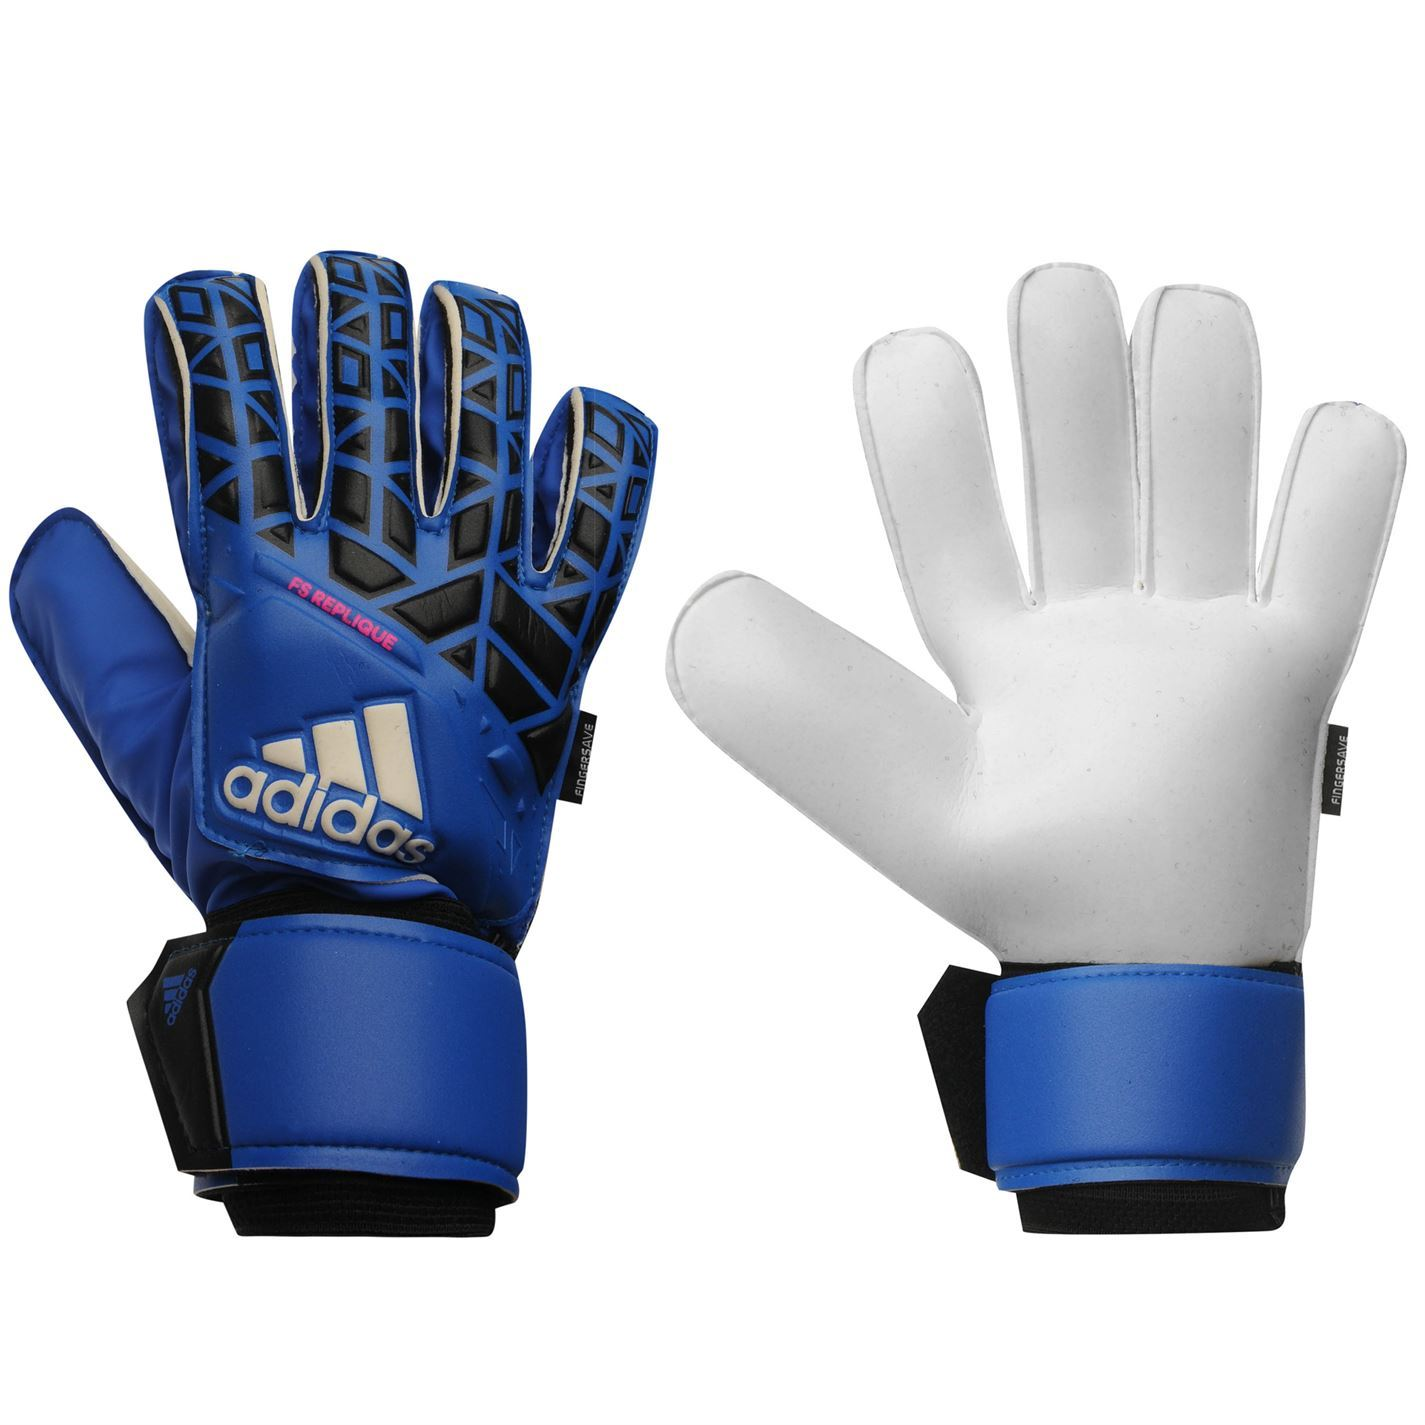 349830cac4d864 adidas Ace FS Rep Gloves Hands Protection Training Football Accessories